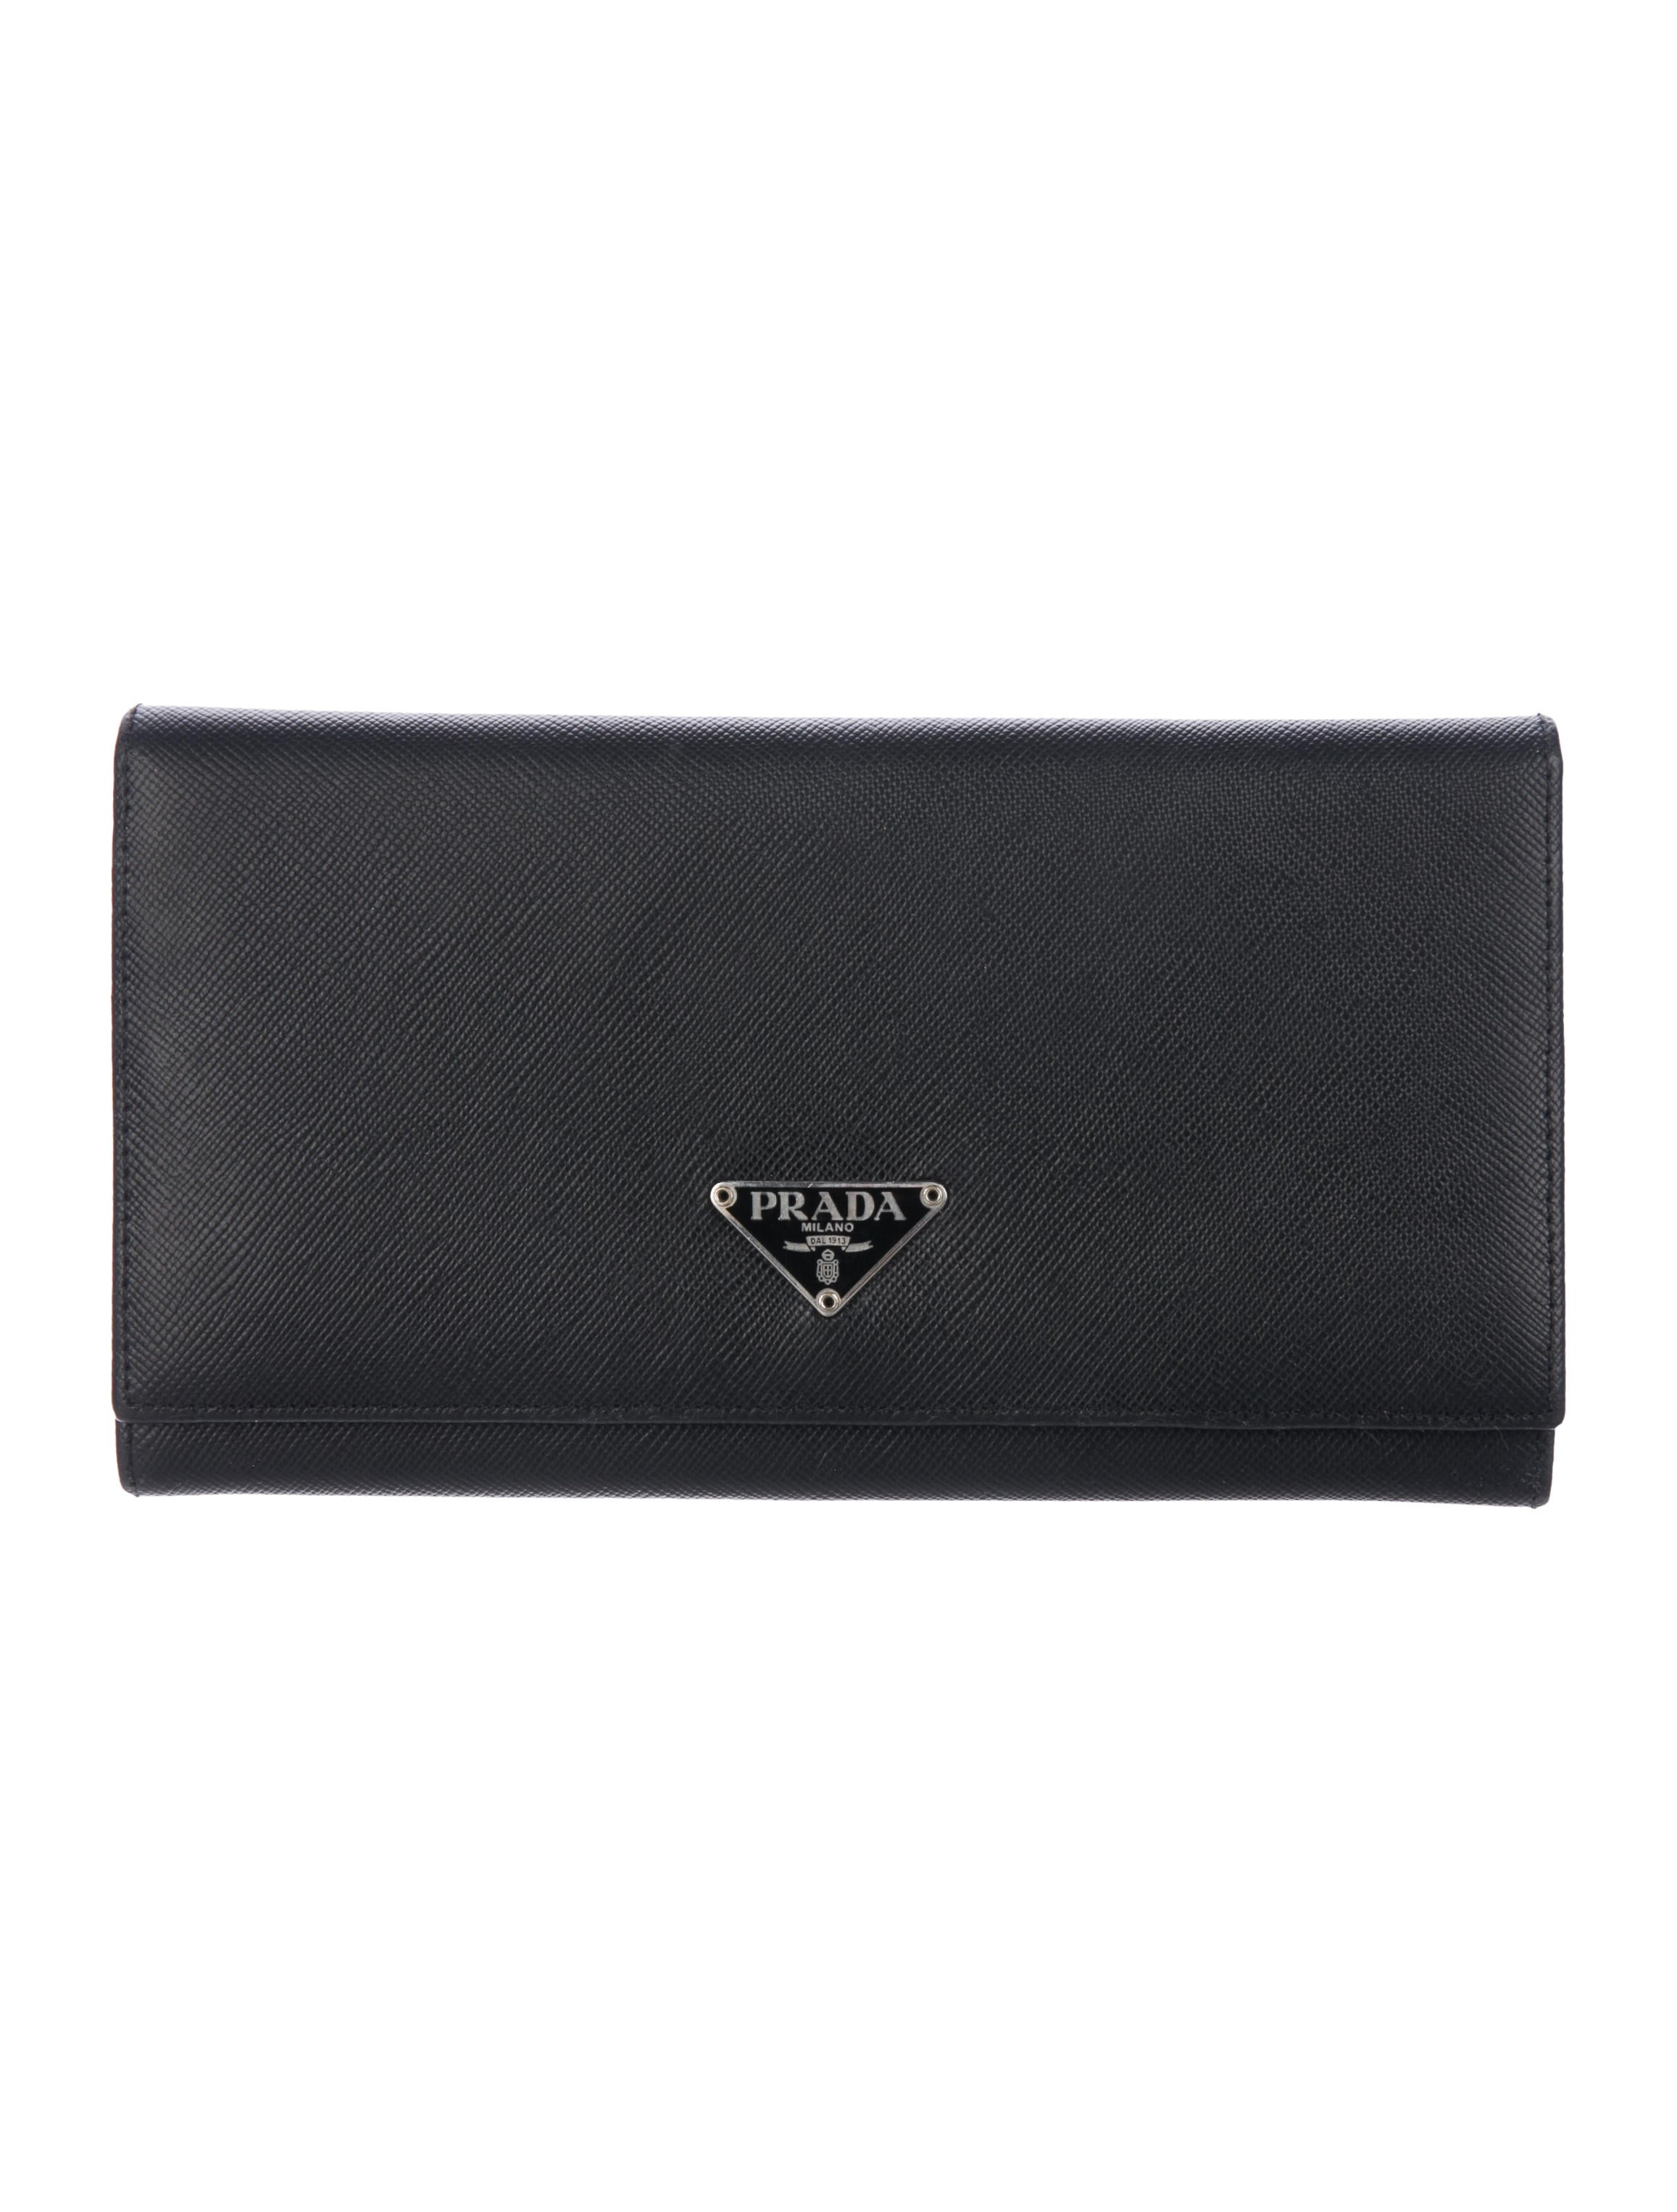 d644d9e14d22e4 Prada Saffiano Flap Wallet - Accessories - PRA208350 | The RealReal